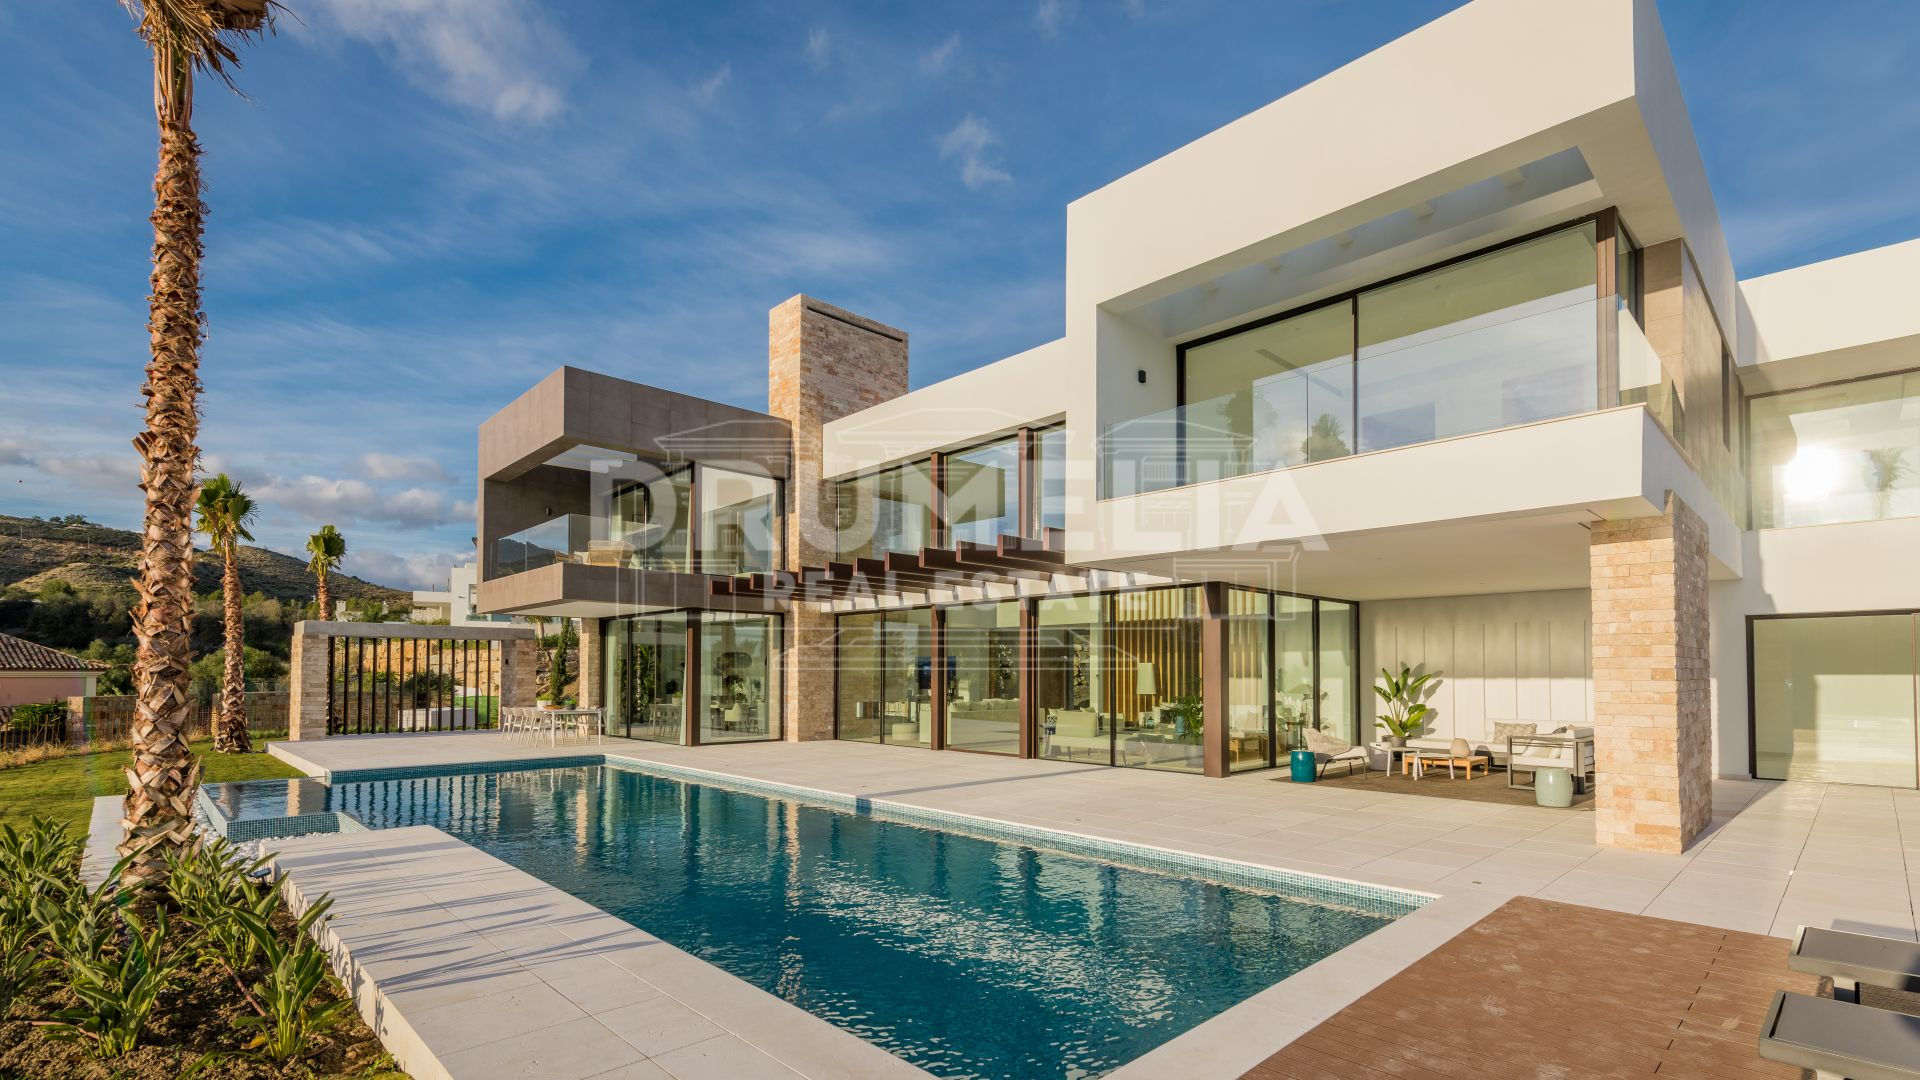 Benahavis, Brand-New Stunning, Chic Contemporary Style Luxury Villa in La Alqueria, Benahavis